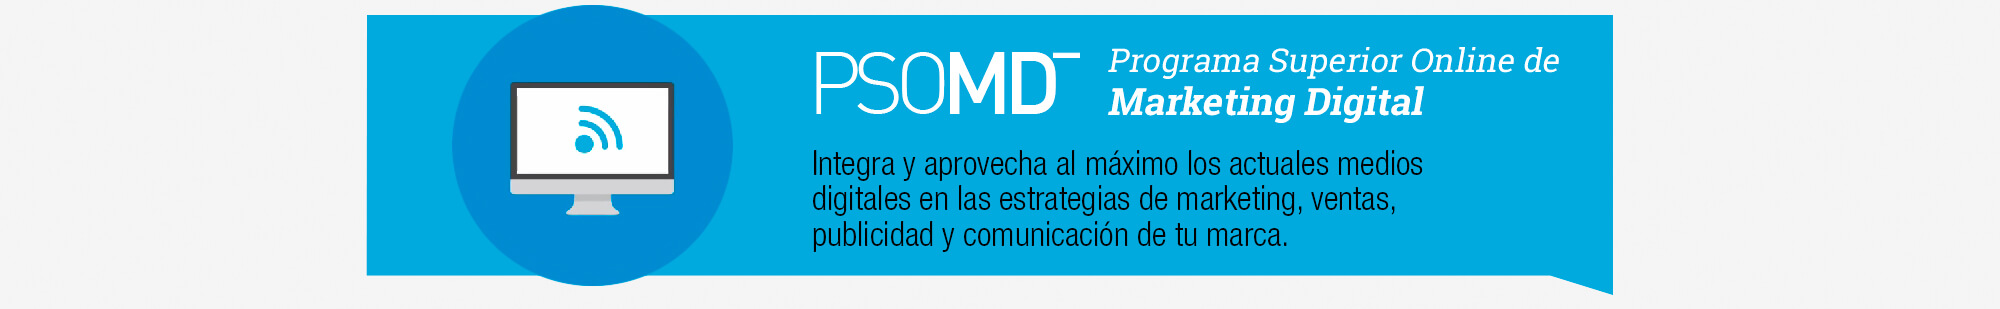 Programa Superior Online de Marketing Digital